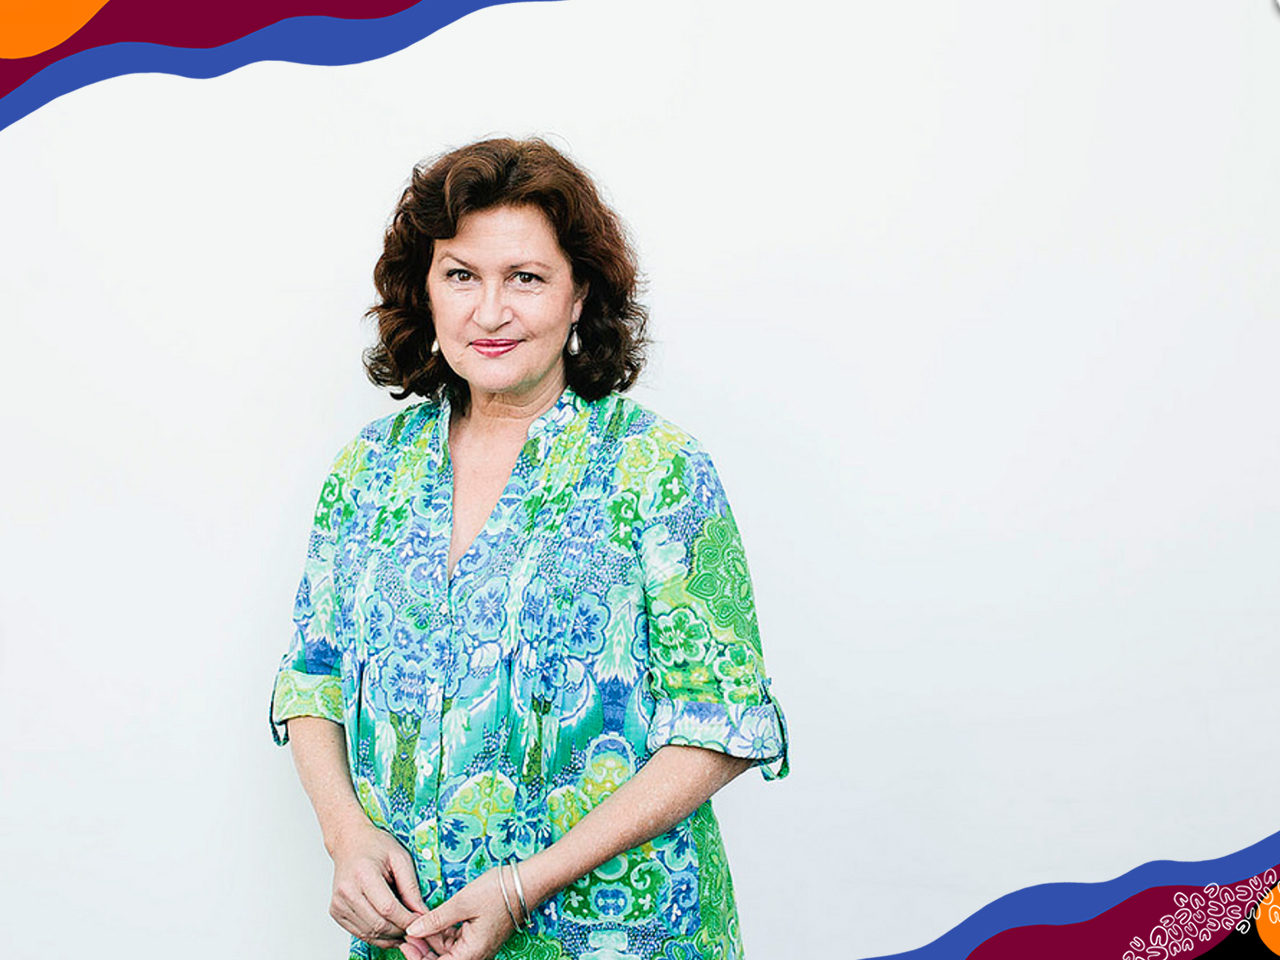 A woman with brown curly bob in lime green and blue patterned shirt stands in front of white wall.